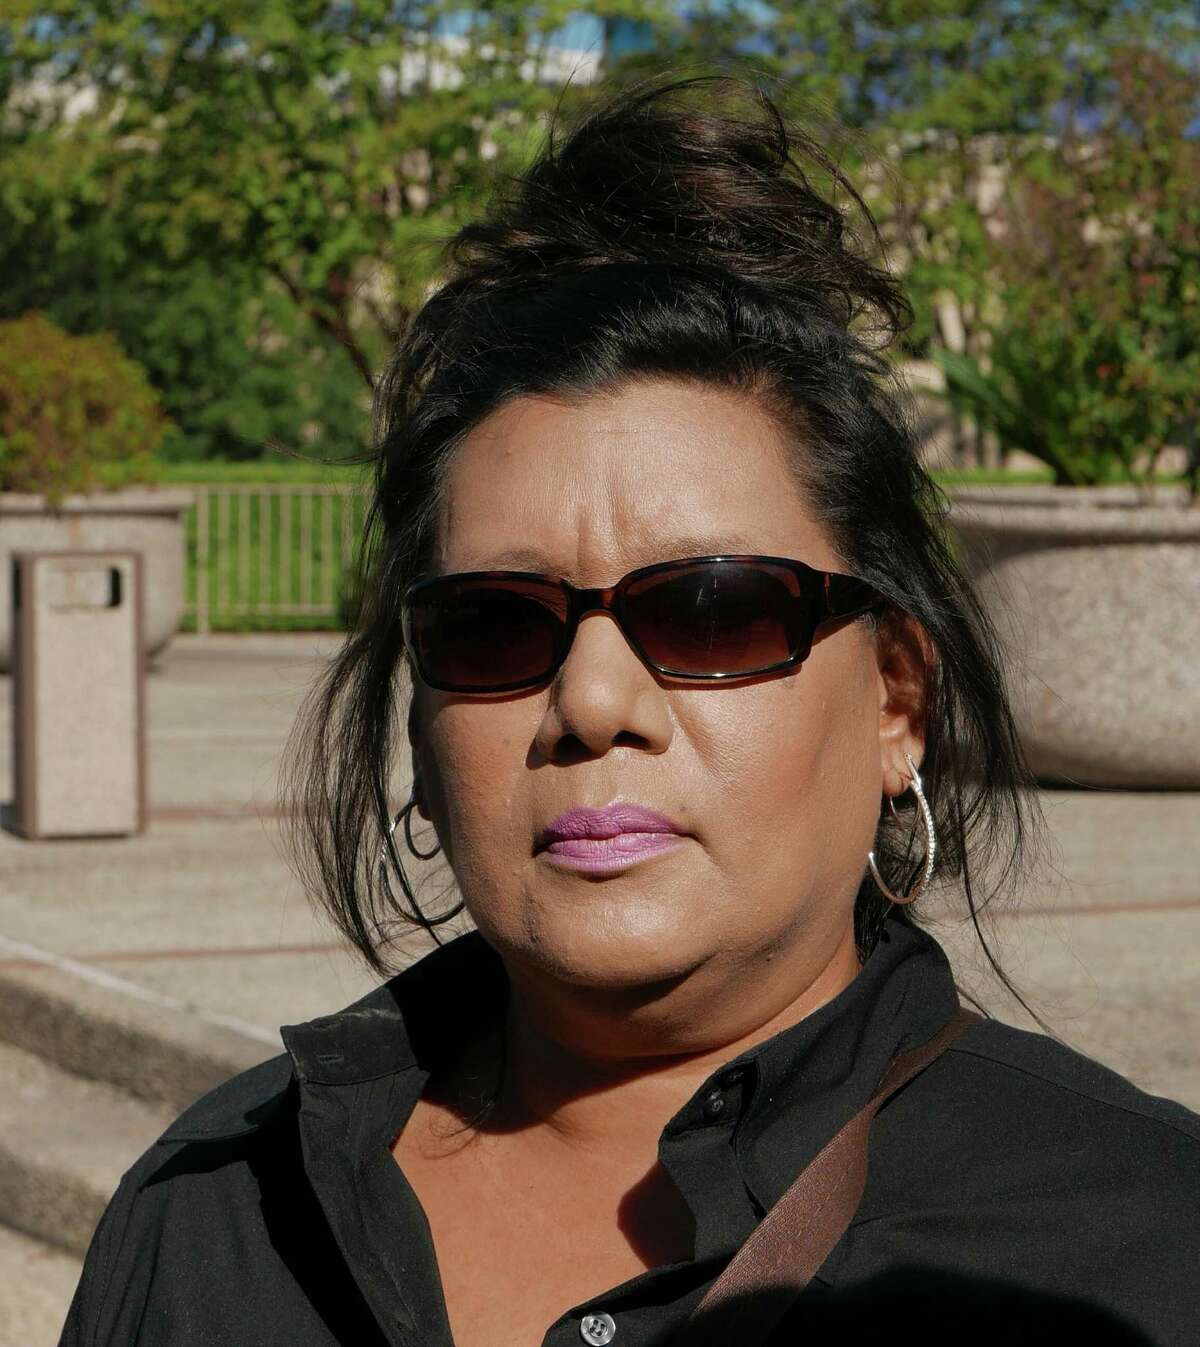 Linda Ann Perez, 47, a former clerk with the Texas Department of Public Safety, leaves the federal courthouse on Tuesday, November 3, 2015. She pleaded guilty to use of interstate facility in aid of illegal activity for issuing at least 144 fraudulent driver's licenses to undocumented immigrants.